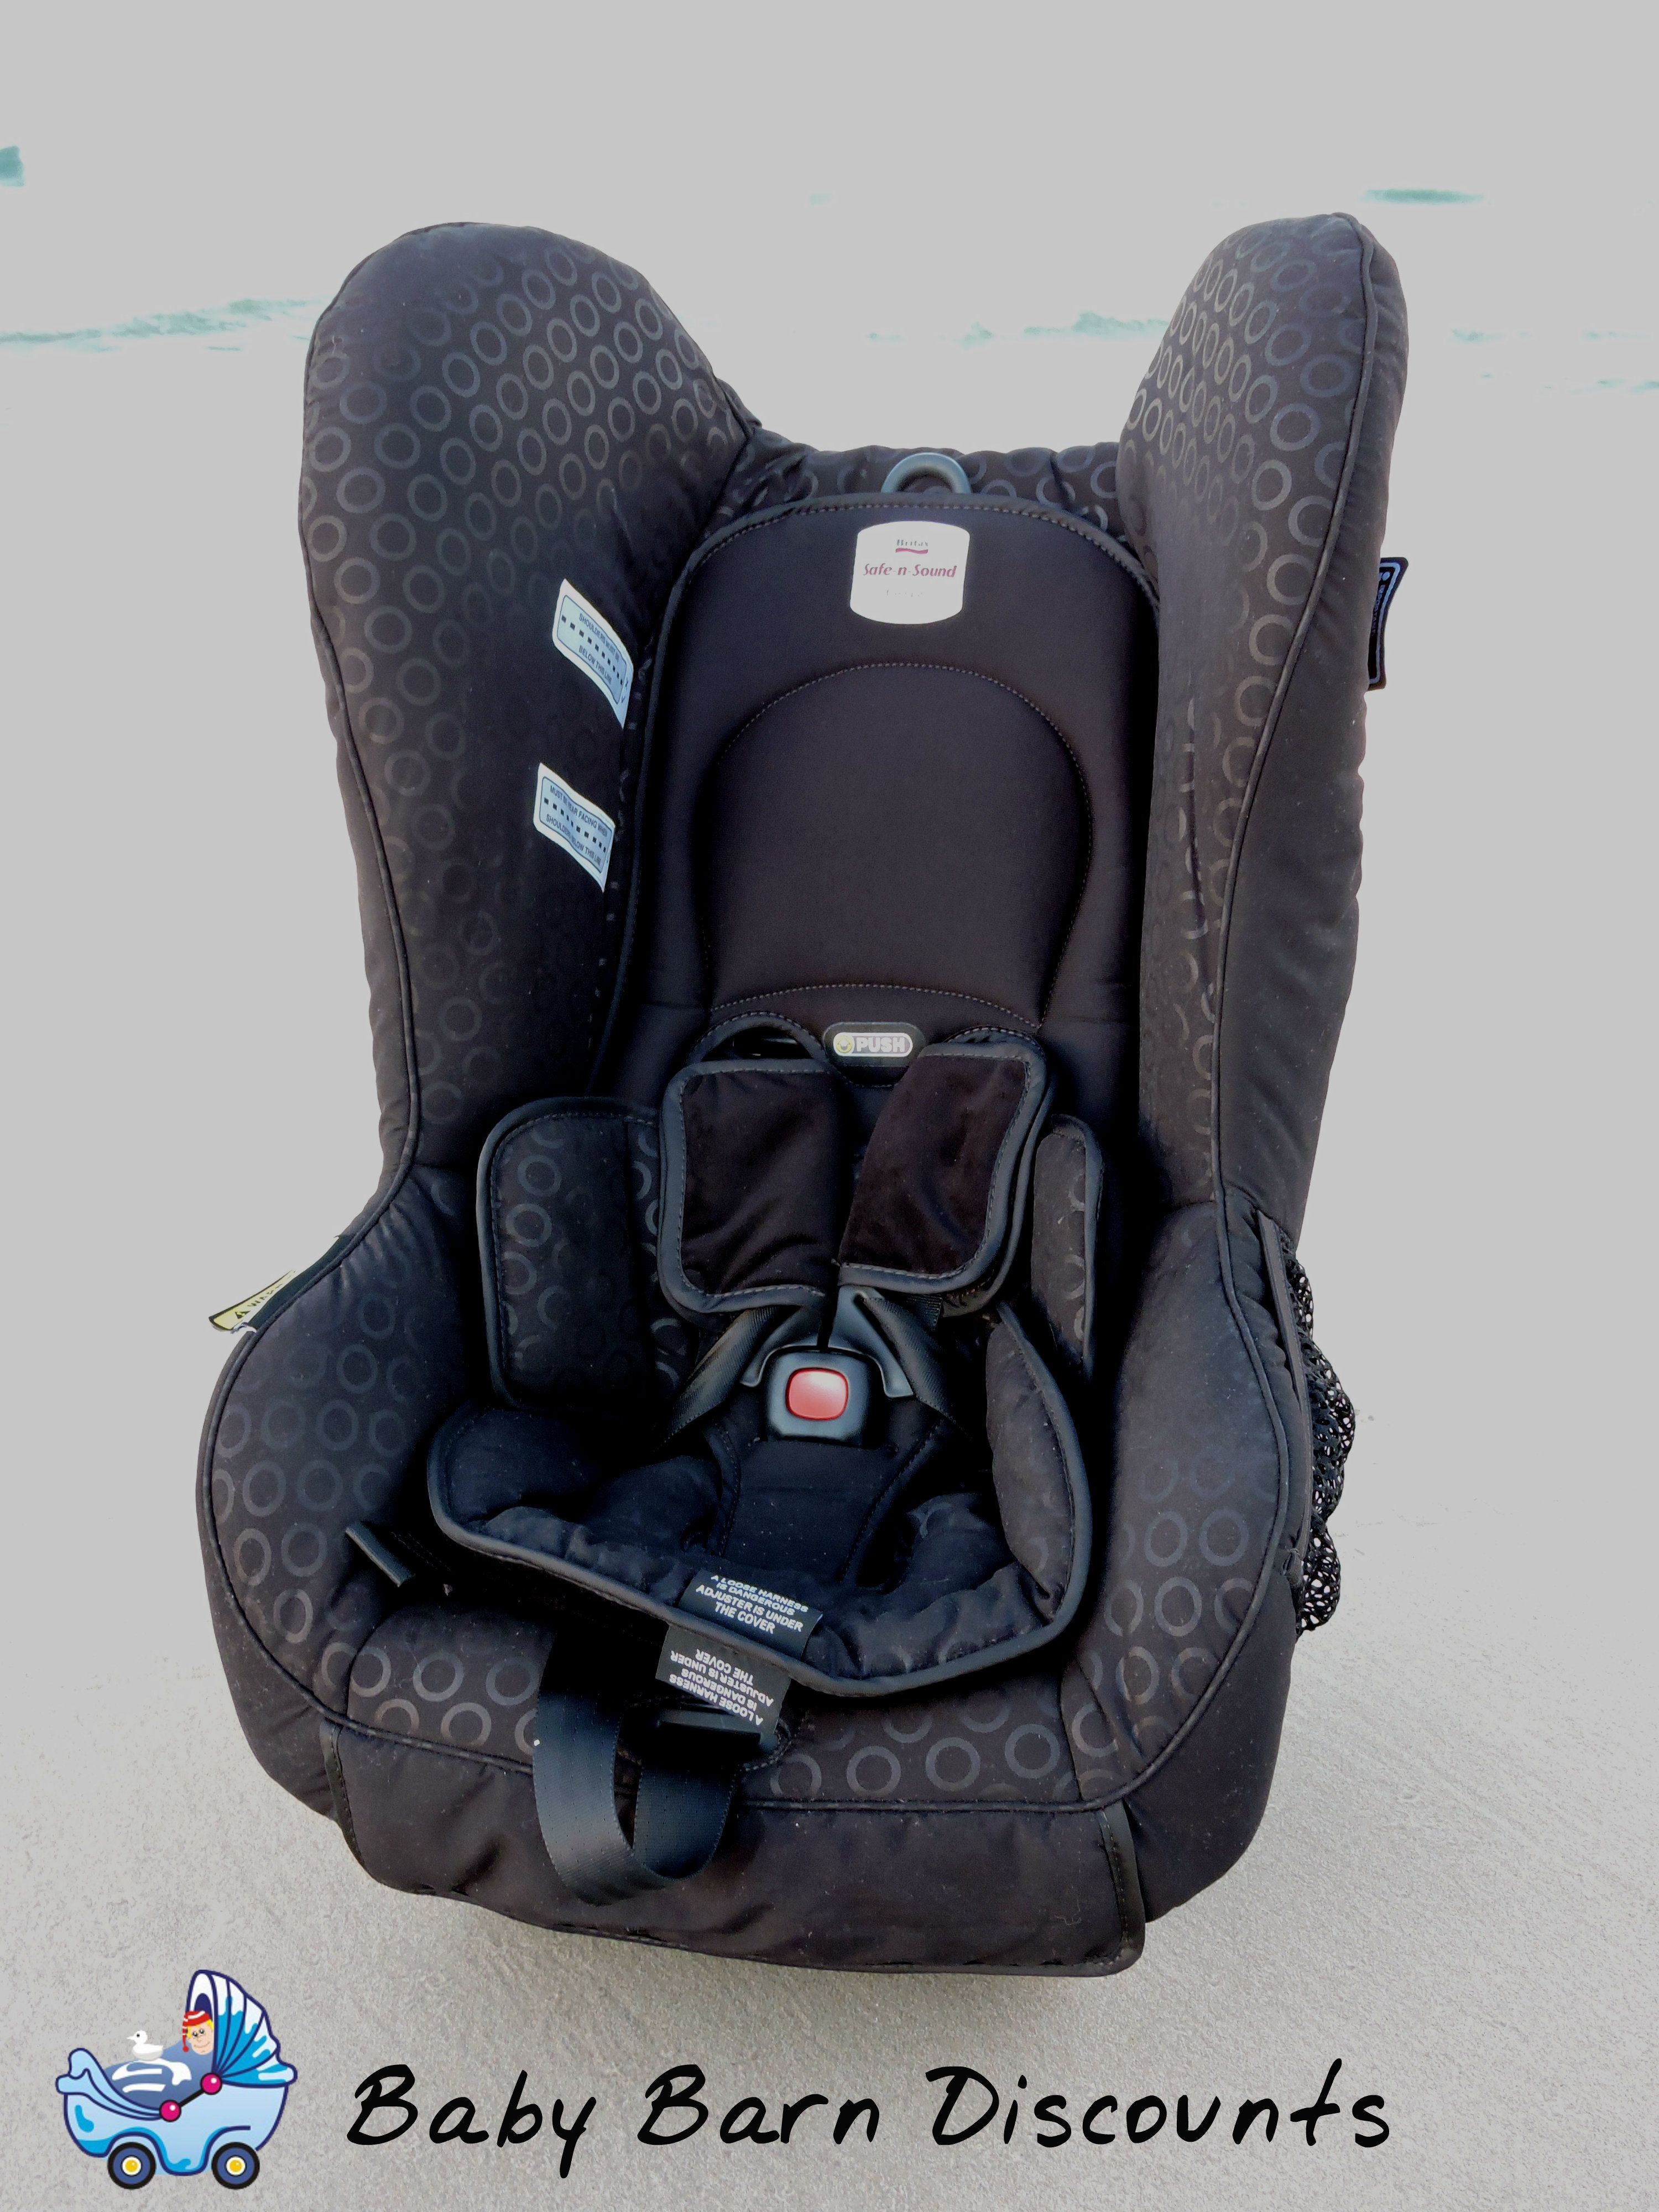 The Safe n Sound Compaq MKII Convertible Car Seat (Black